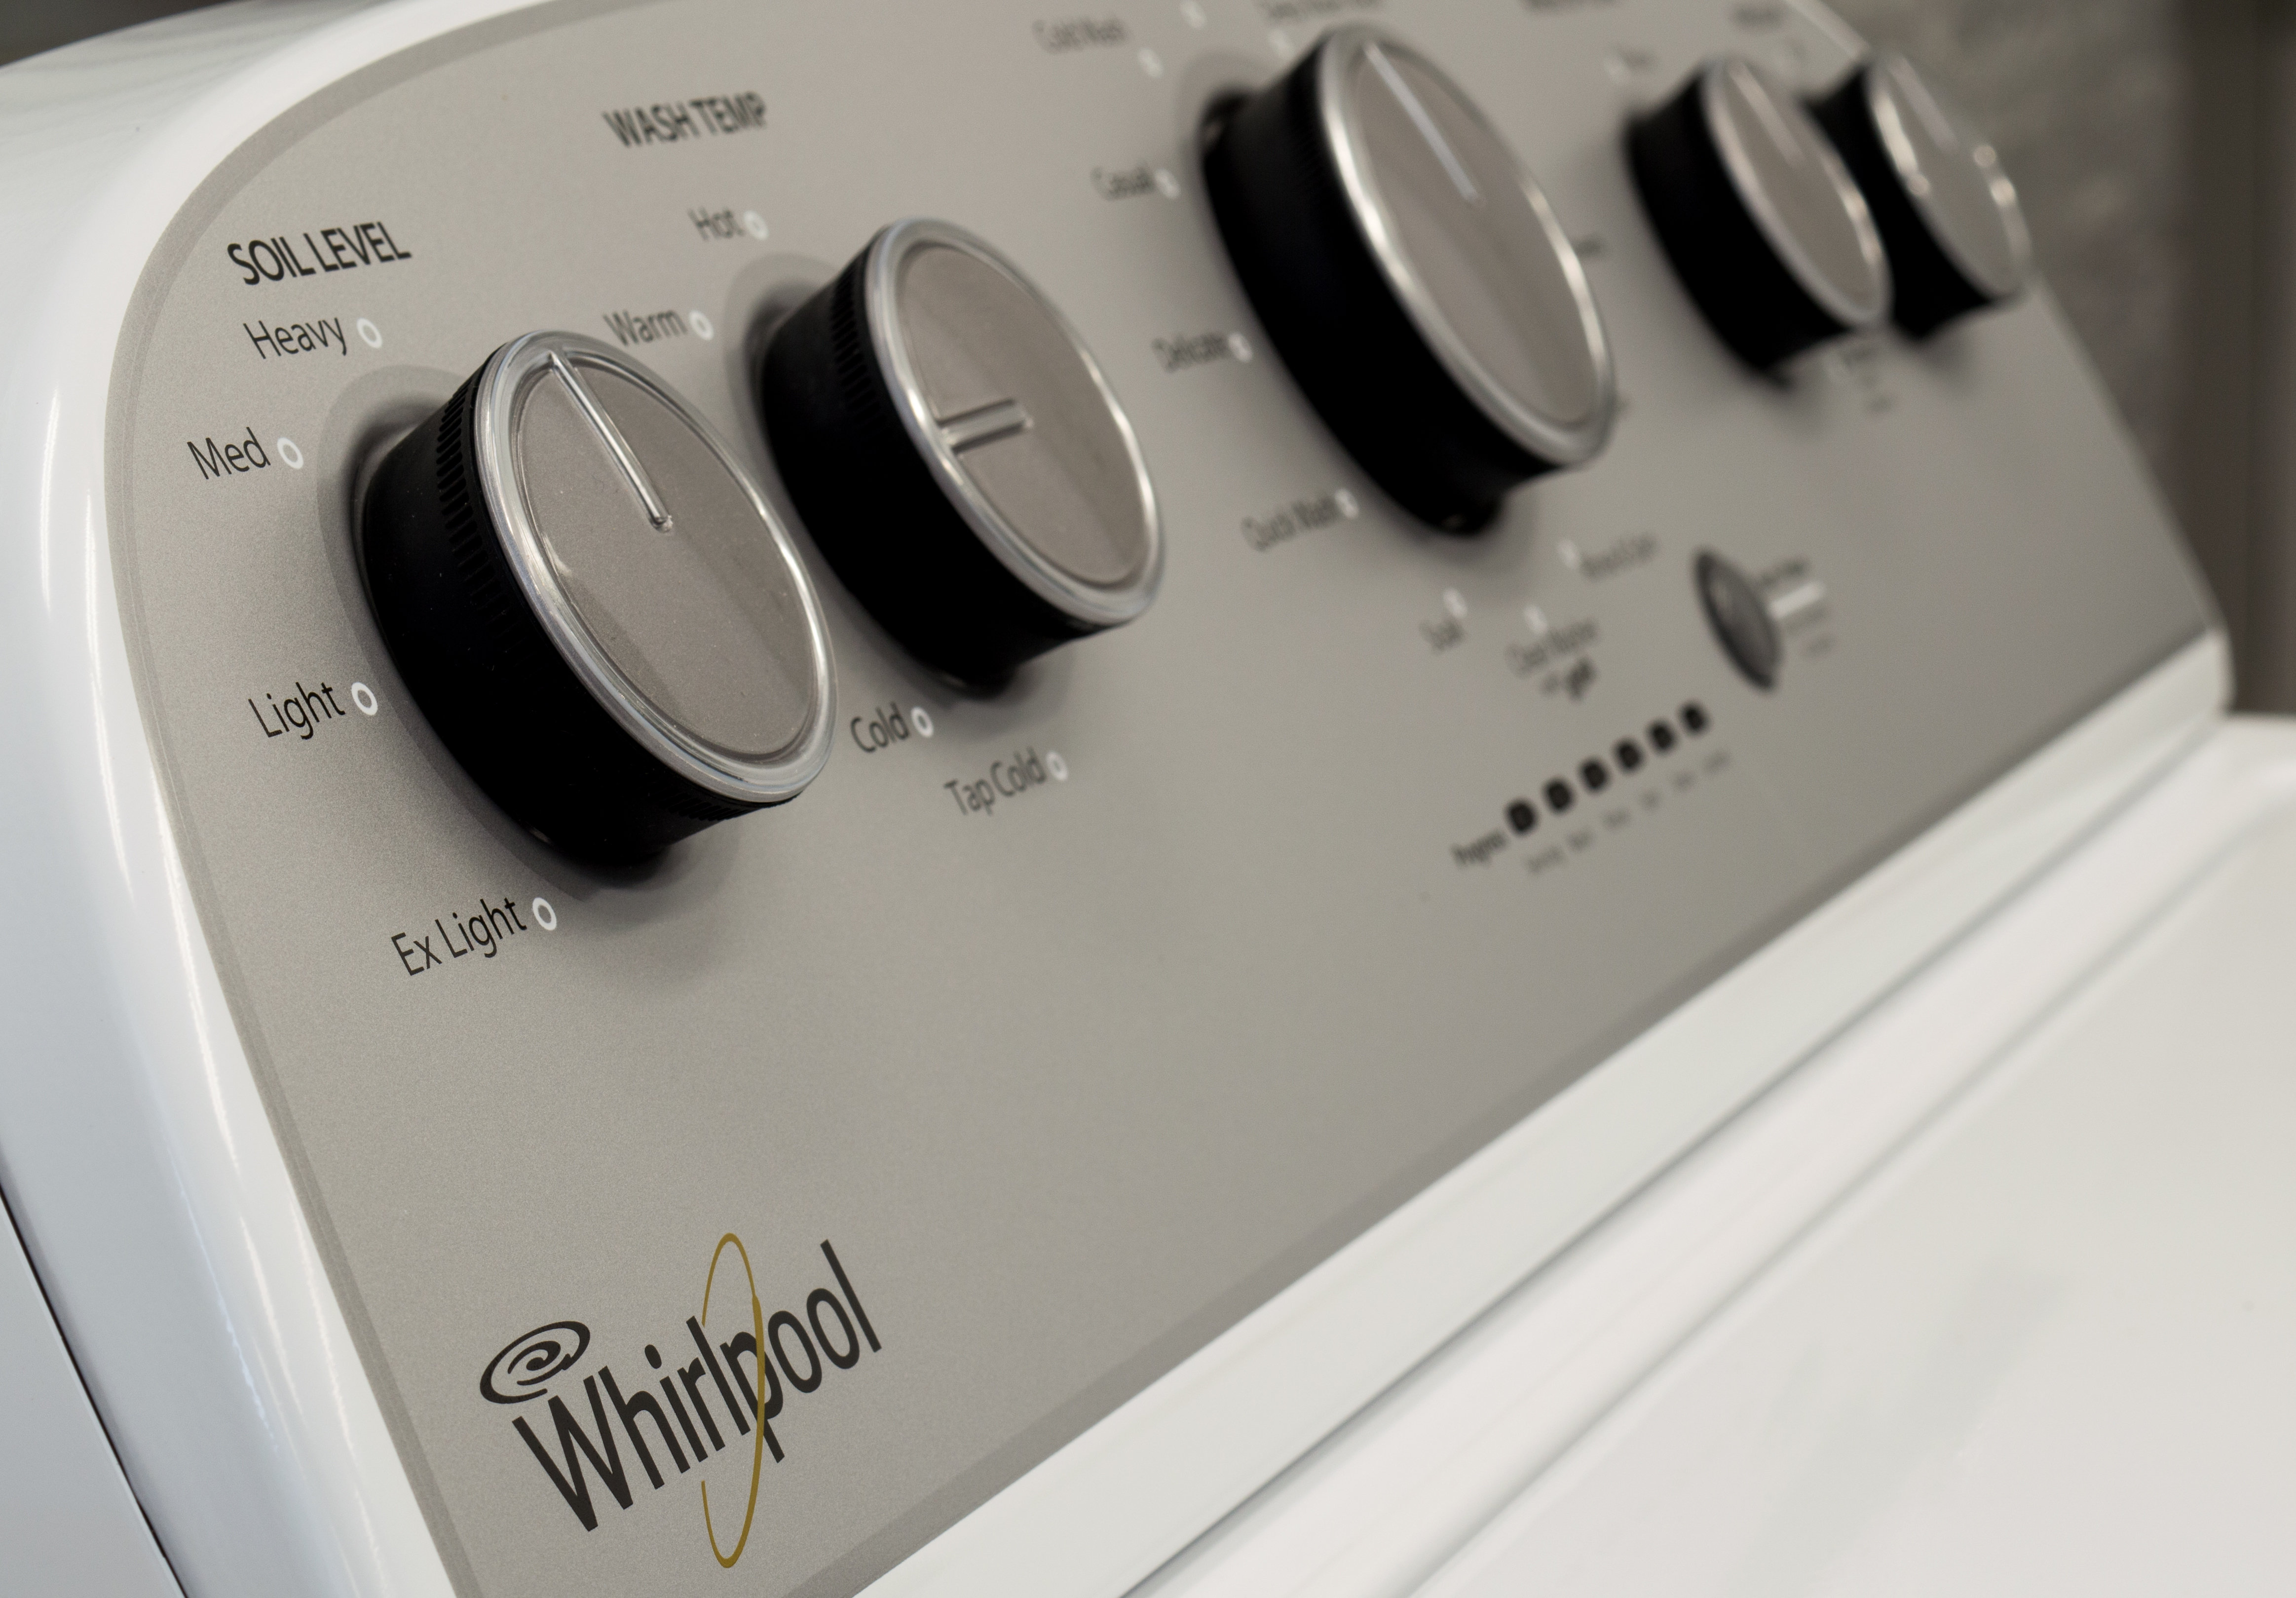 The  uncluttered control panel makes it easy to use.